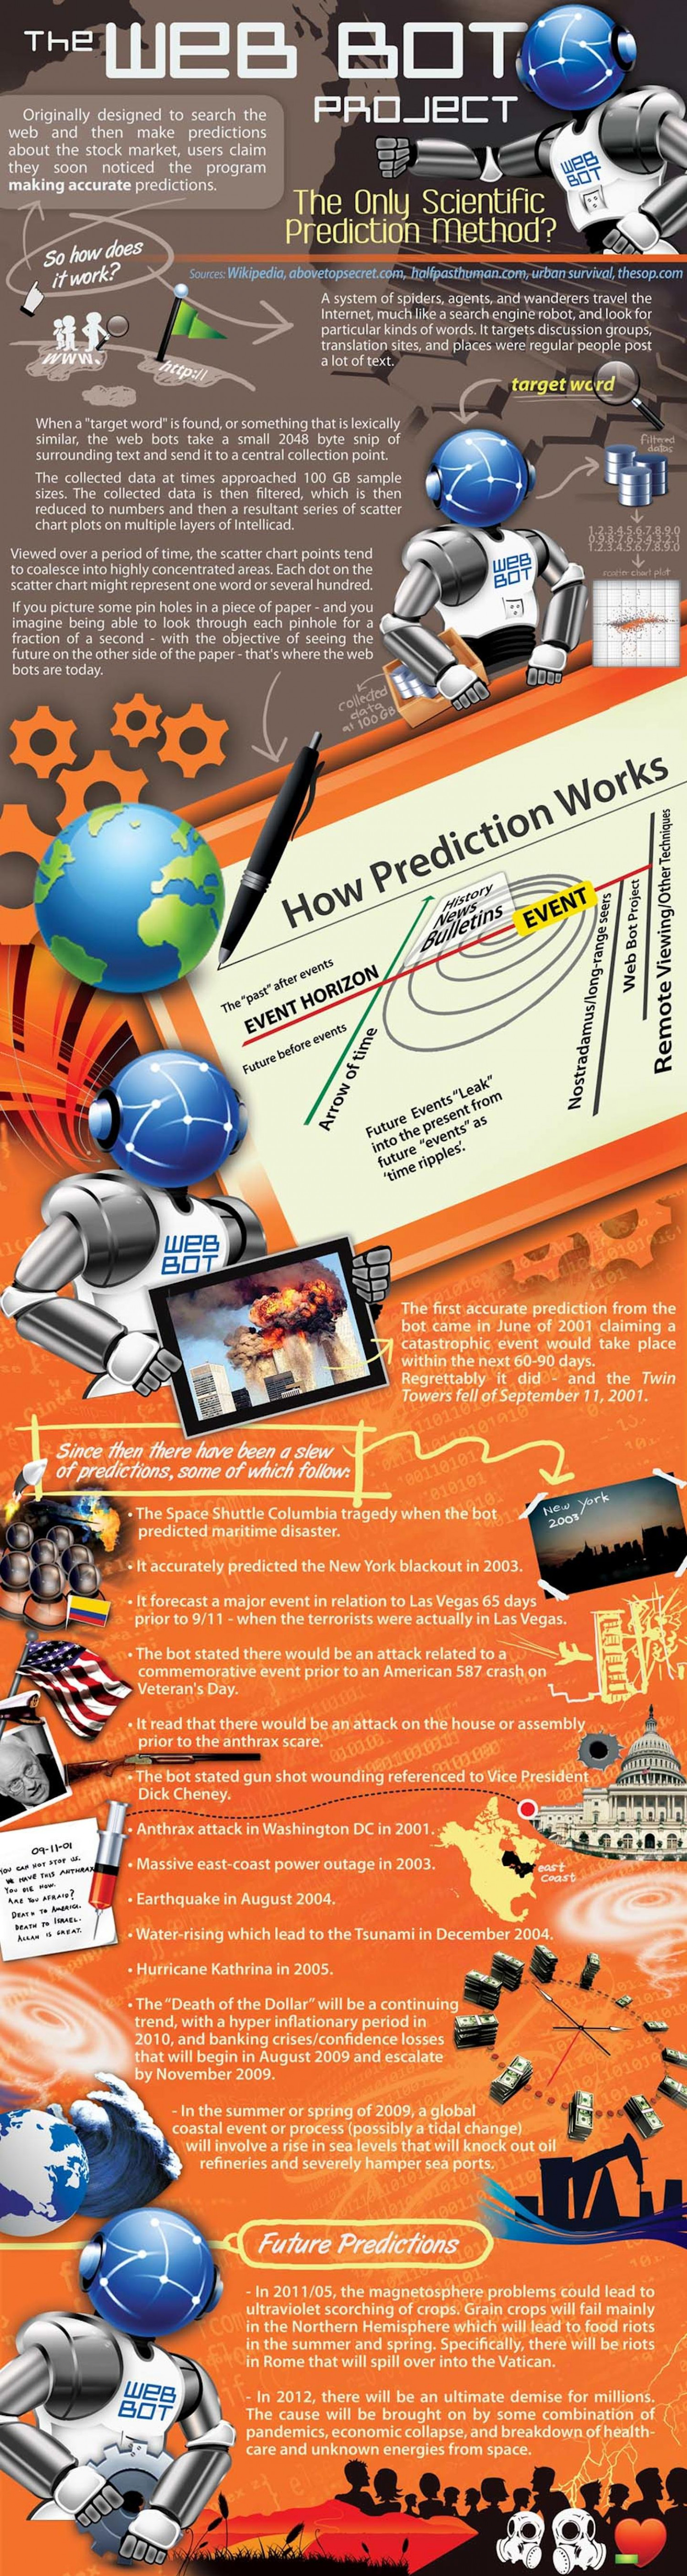 The Web Bot Project 2012 Infographic